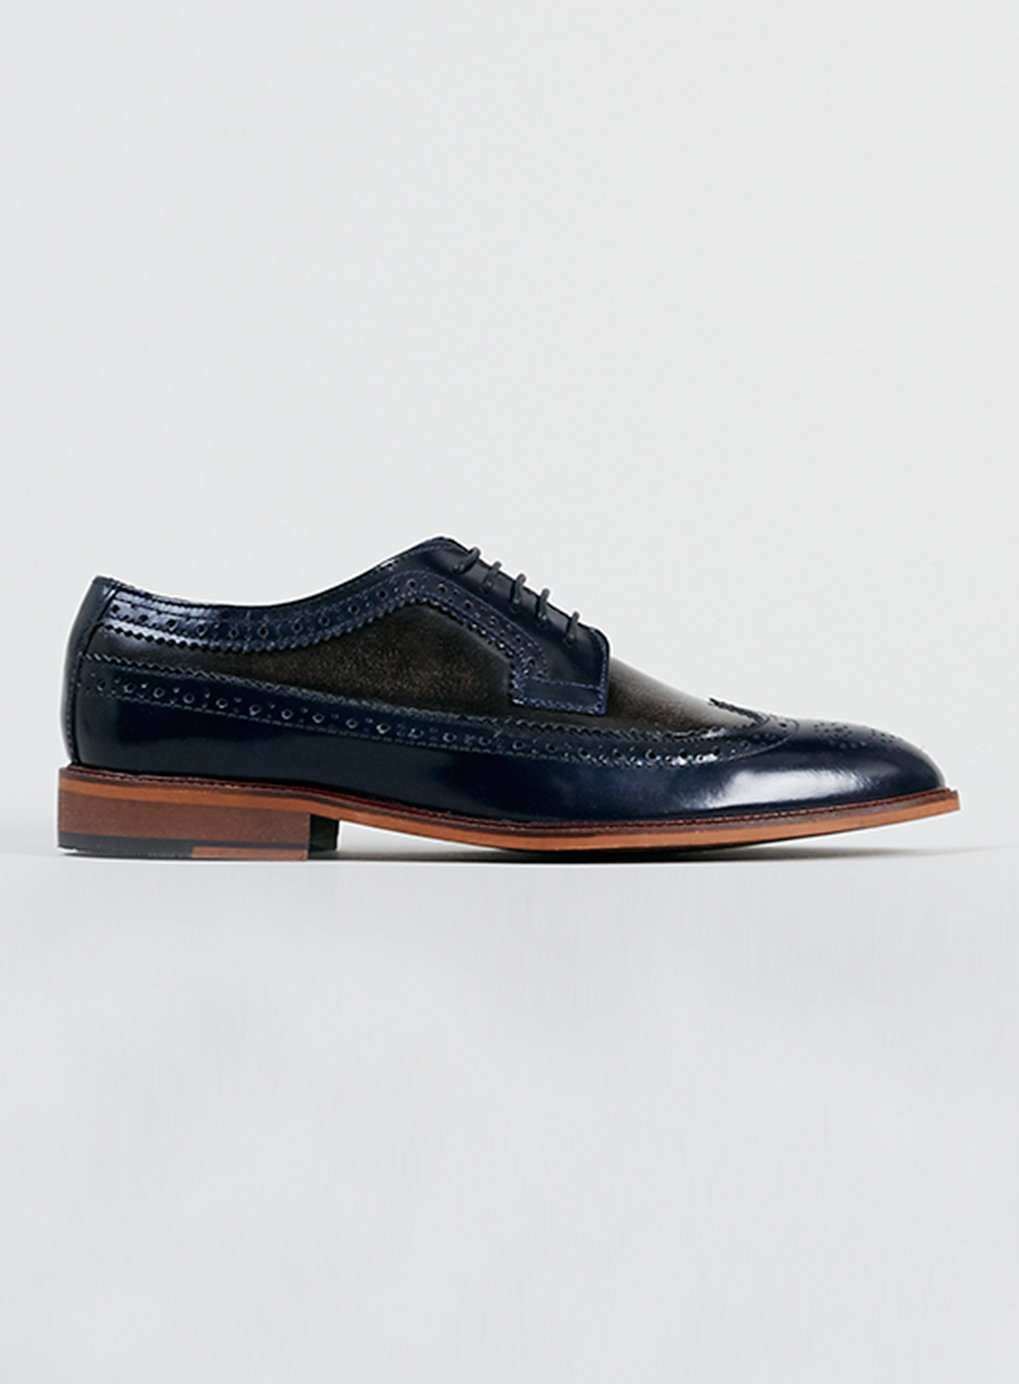 Delta Two Tone Brogue Shoes - Above The Ankles